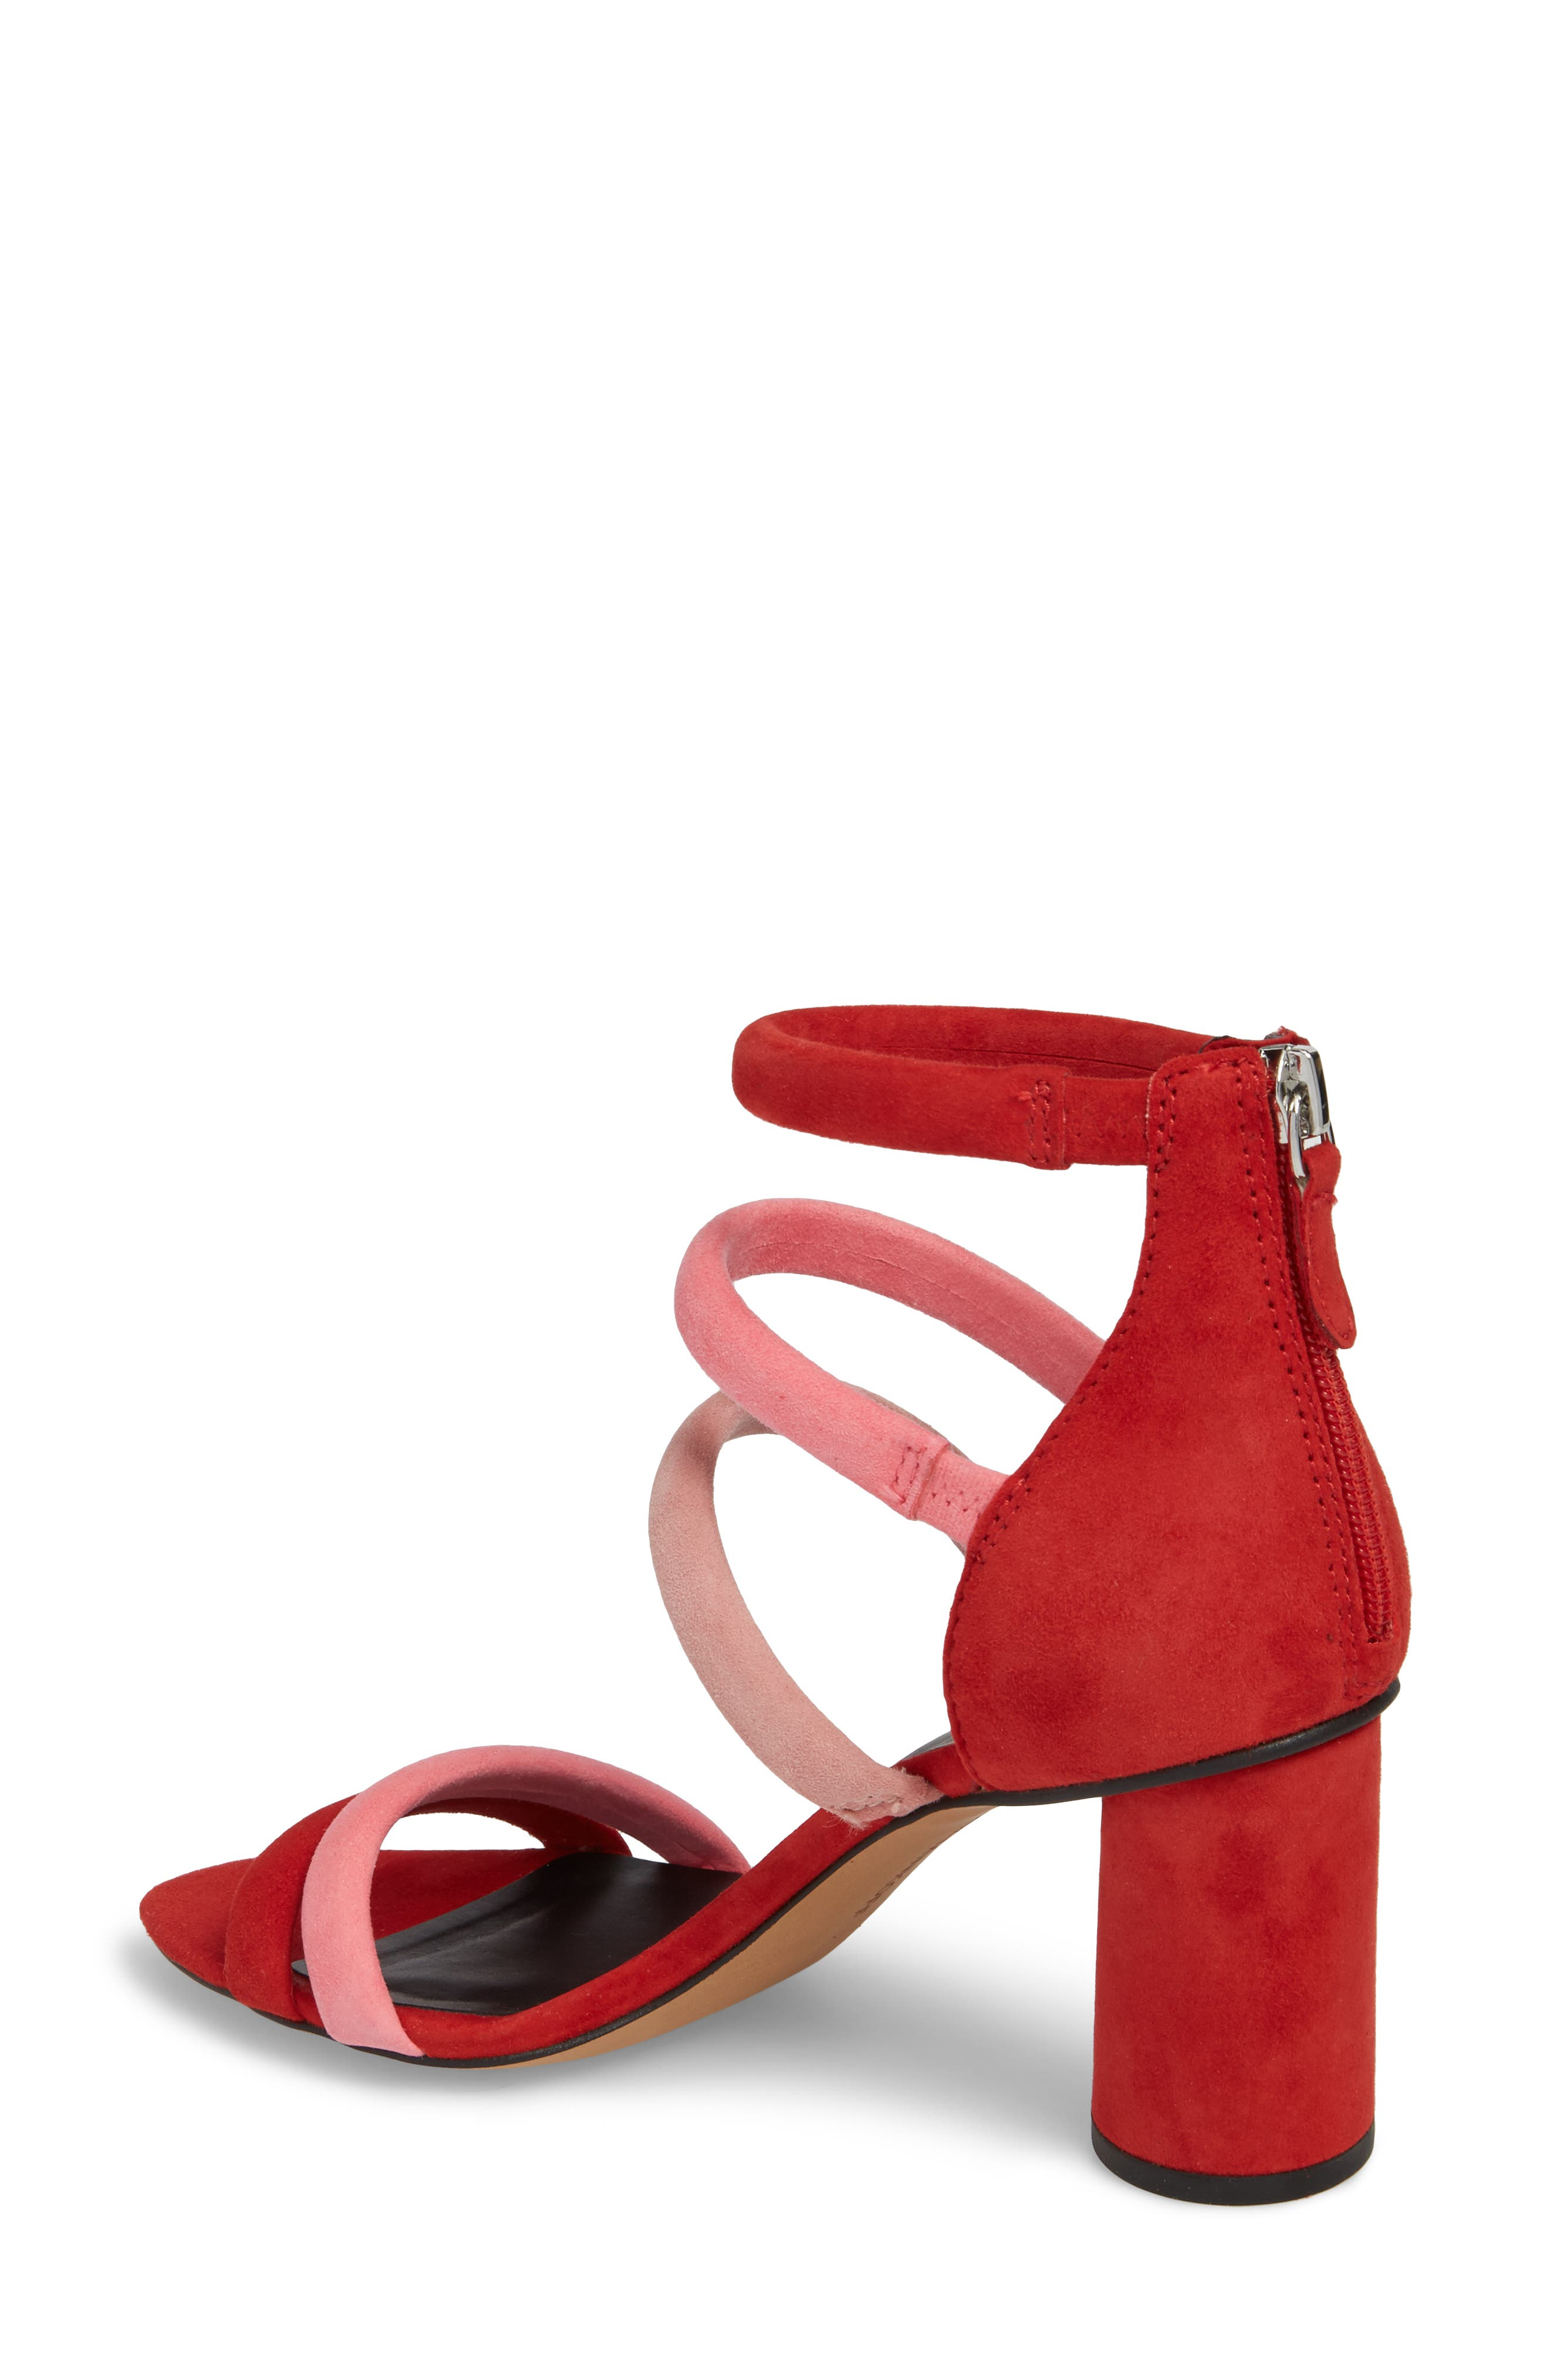 Andree Sandal,                             Alternate thumbnail 2, color,                             Cherry Suede